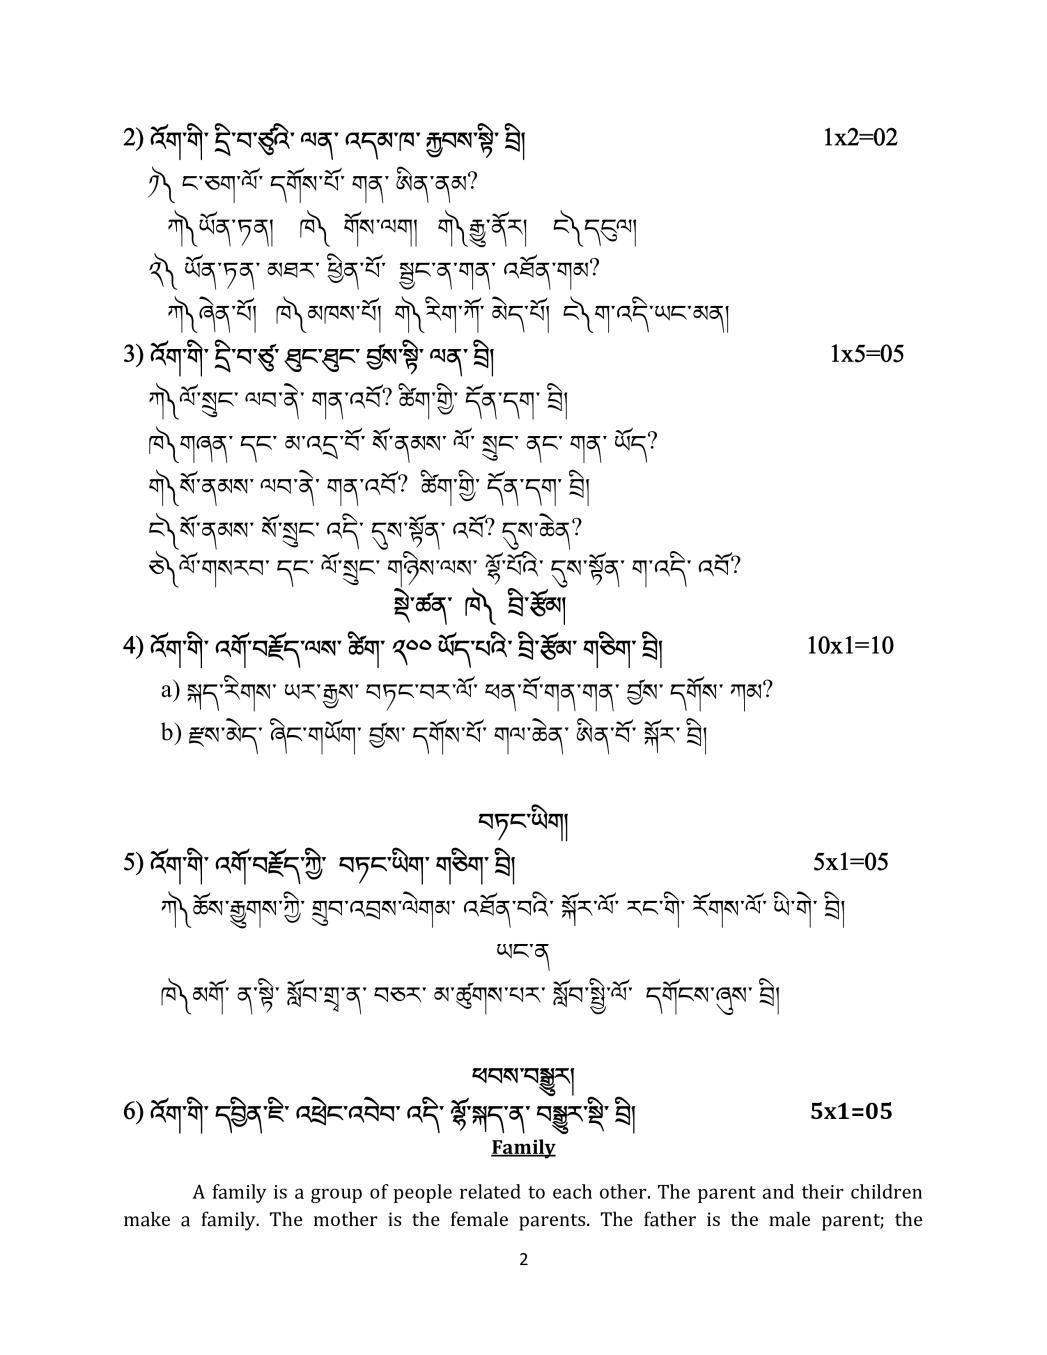 CBSE Sample Papers 2020 for Class 10 – Bhutia